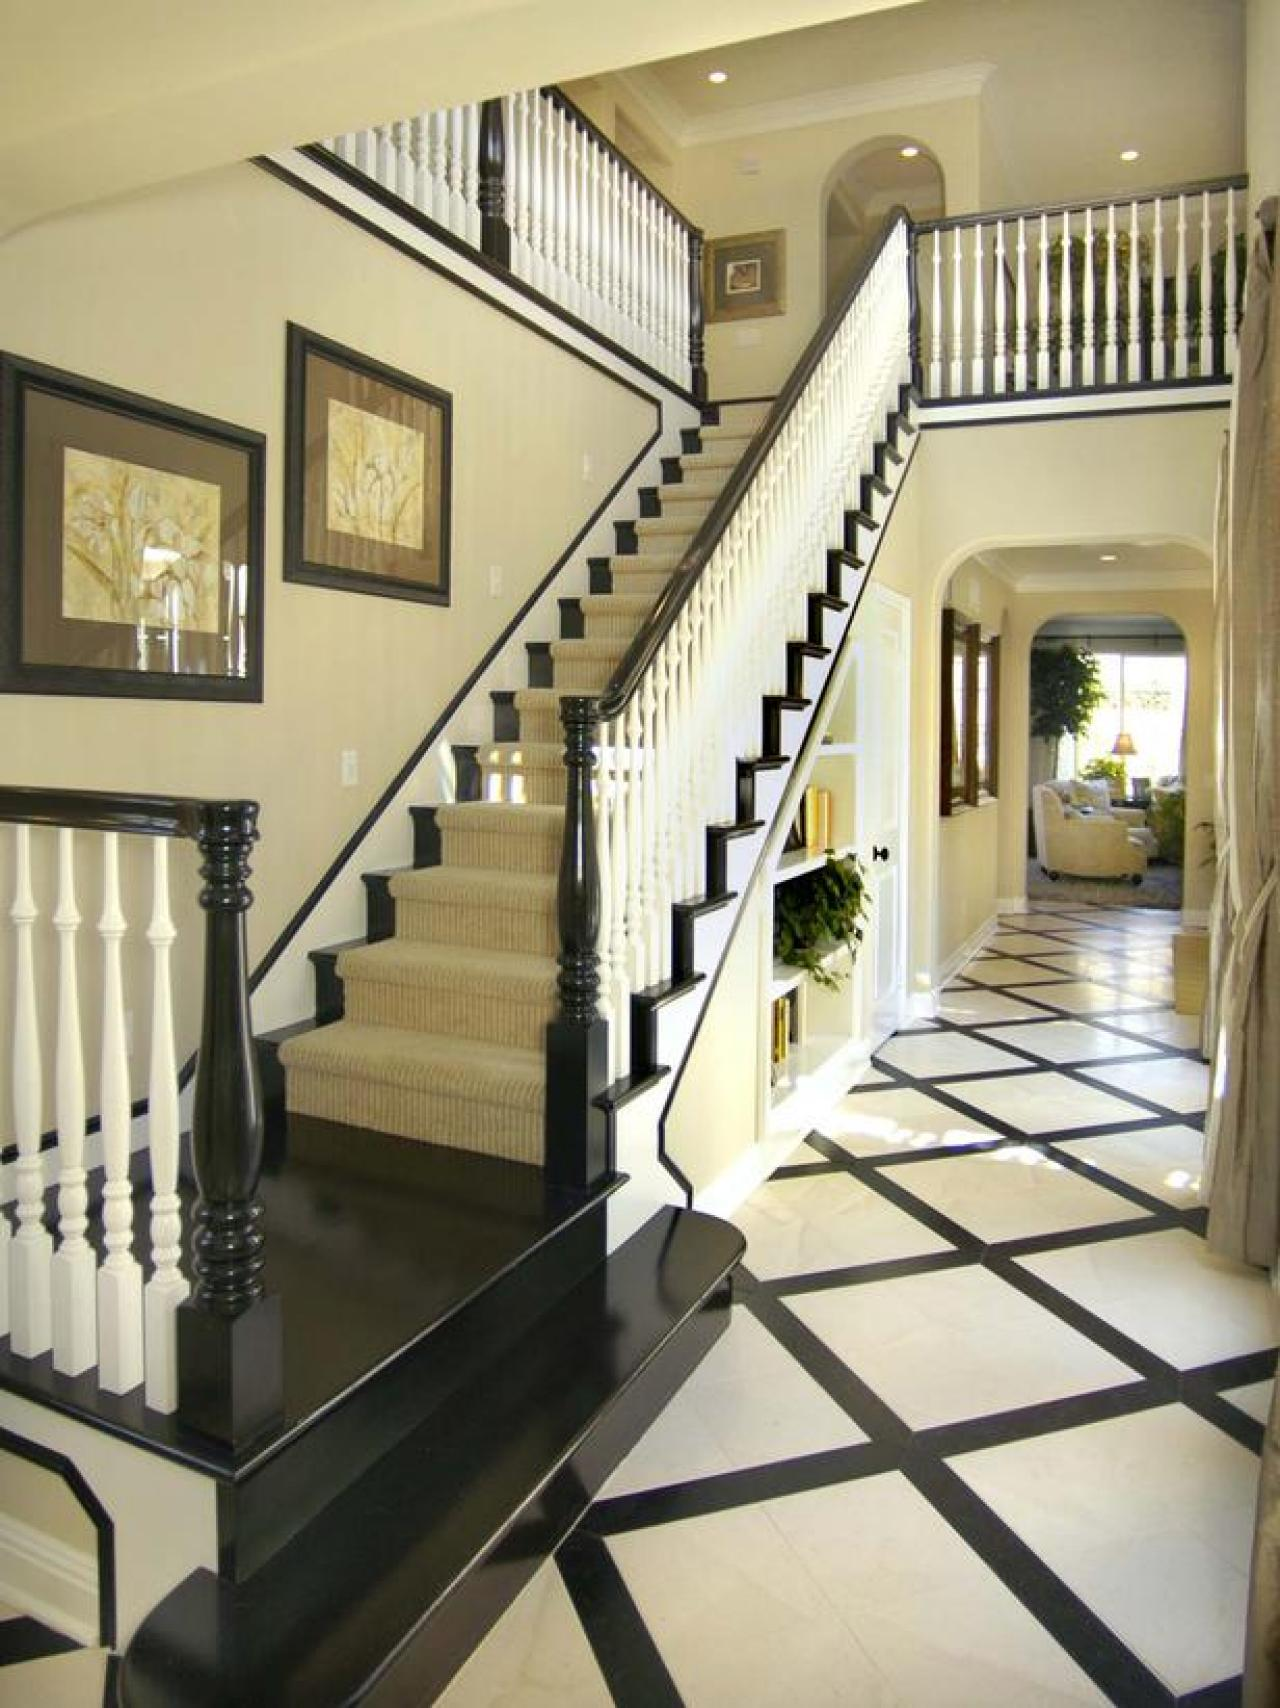 Foyer Stairs Carpet : Ideas for stairs with carpet runners flooring